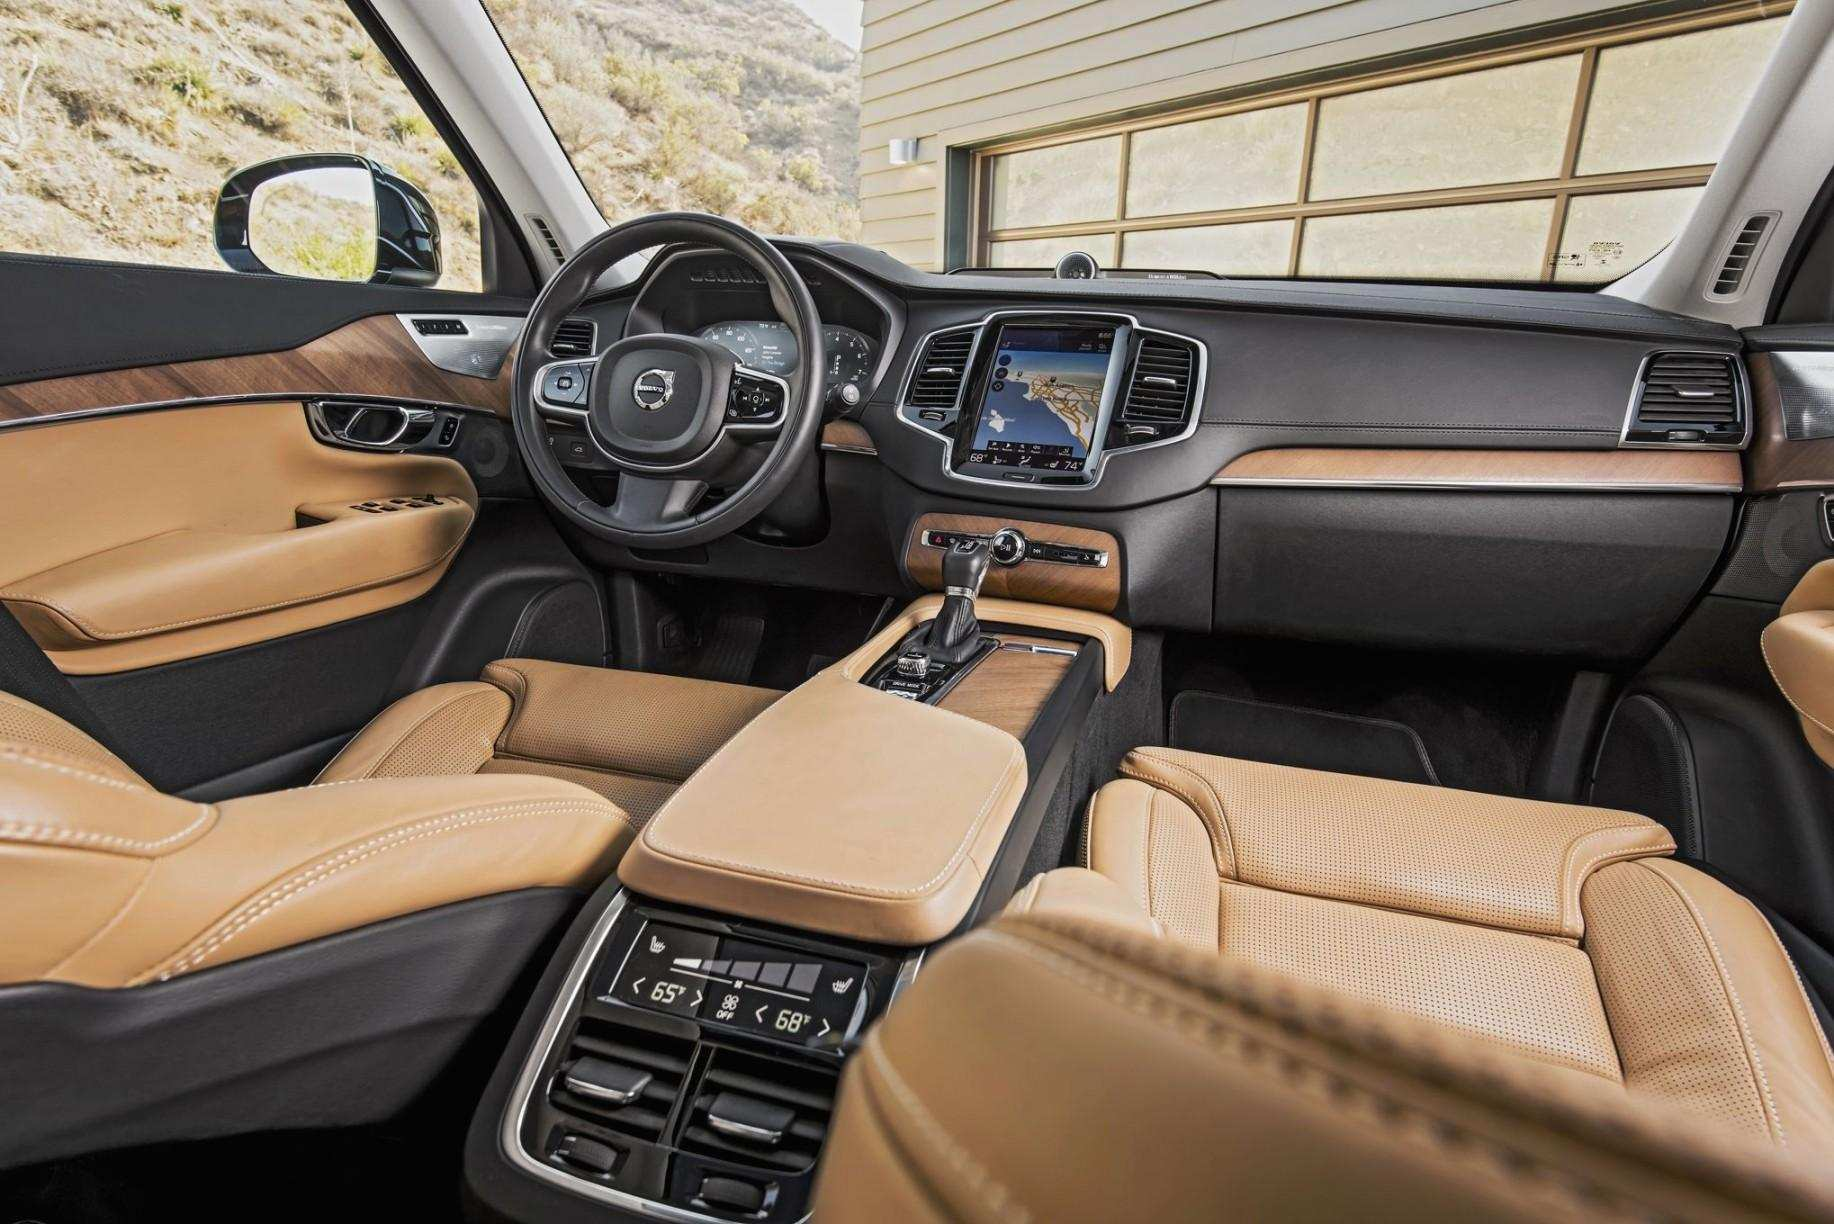 70 The Best Volvo Xc90 2019 Interior Spy Shoot